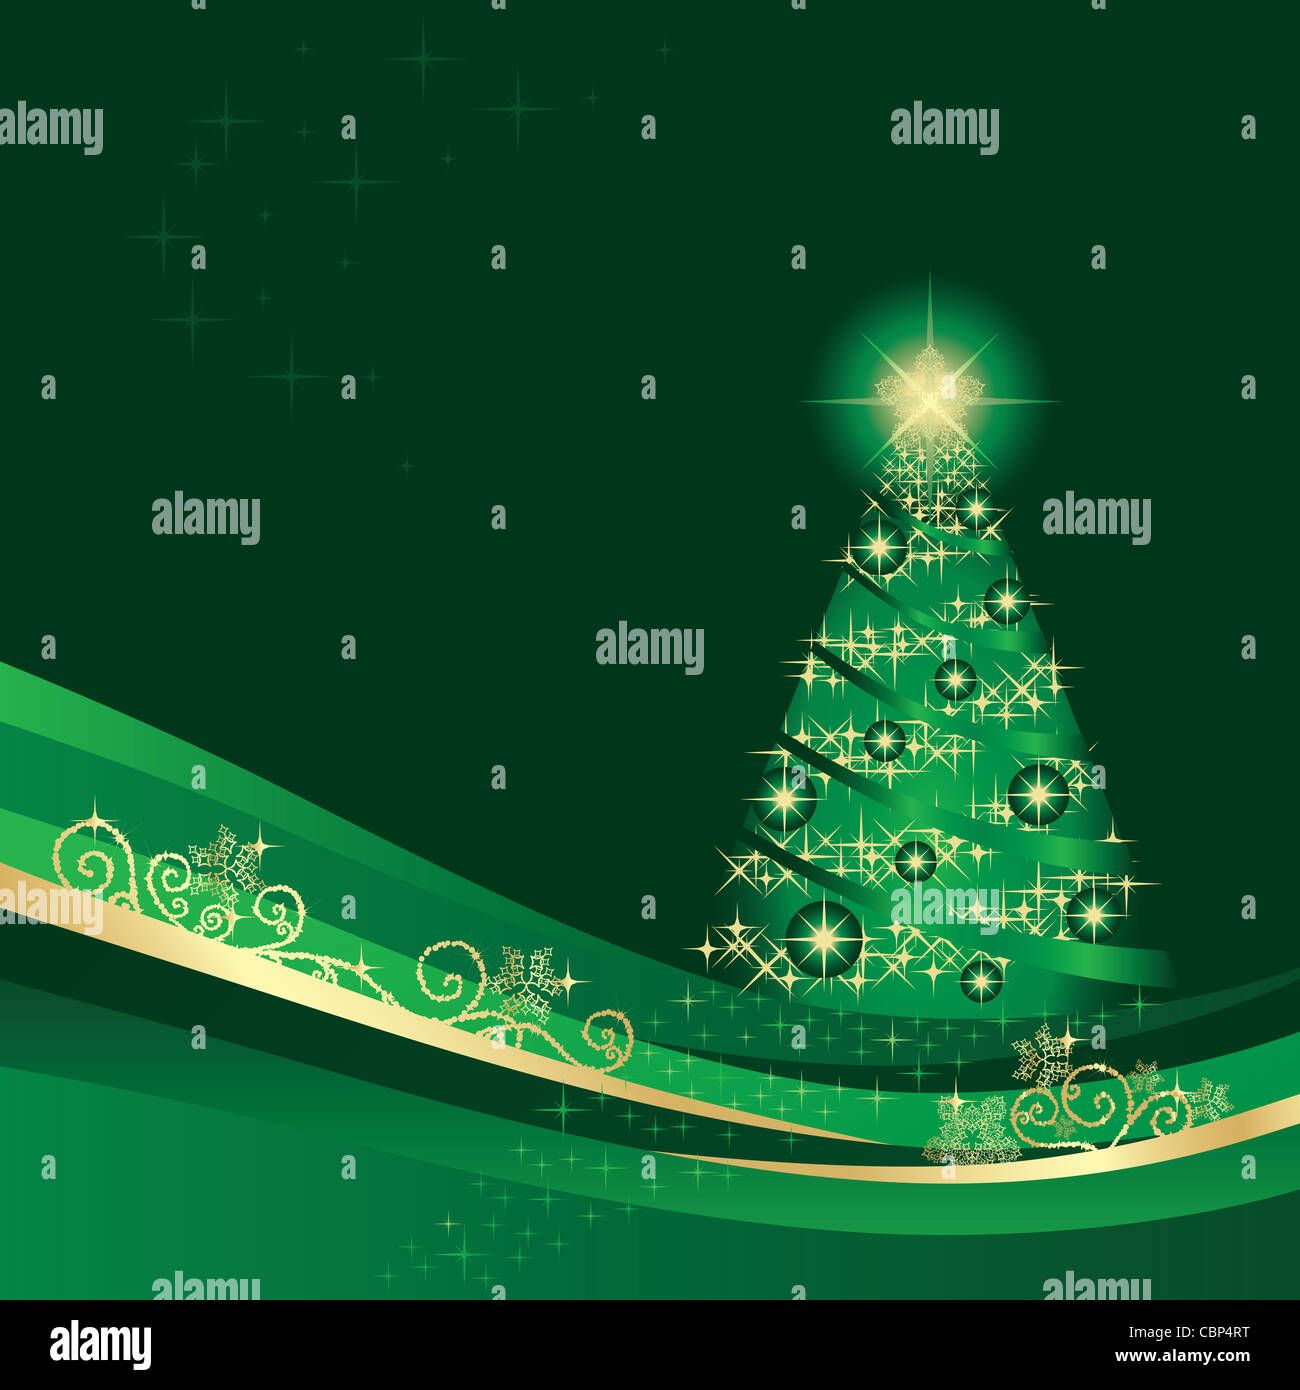 Glowing green and gold Christmas tree in a green winter garden Stock Photo